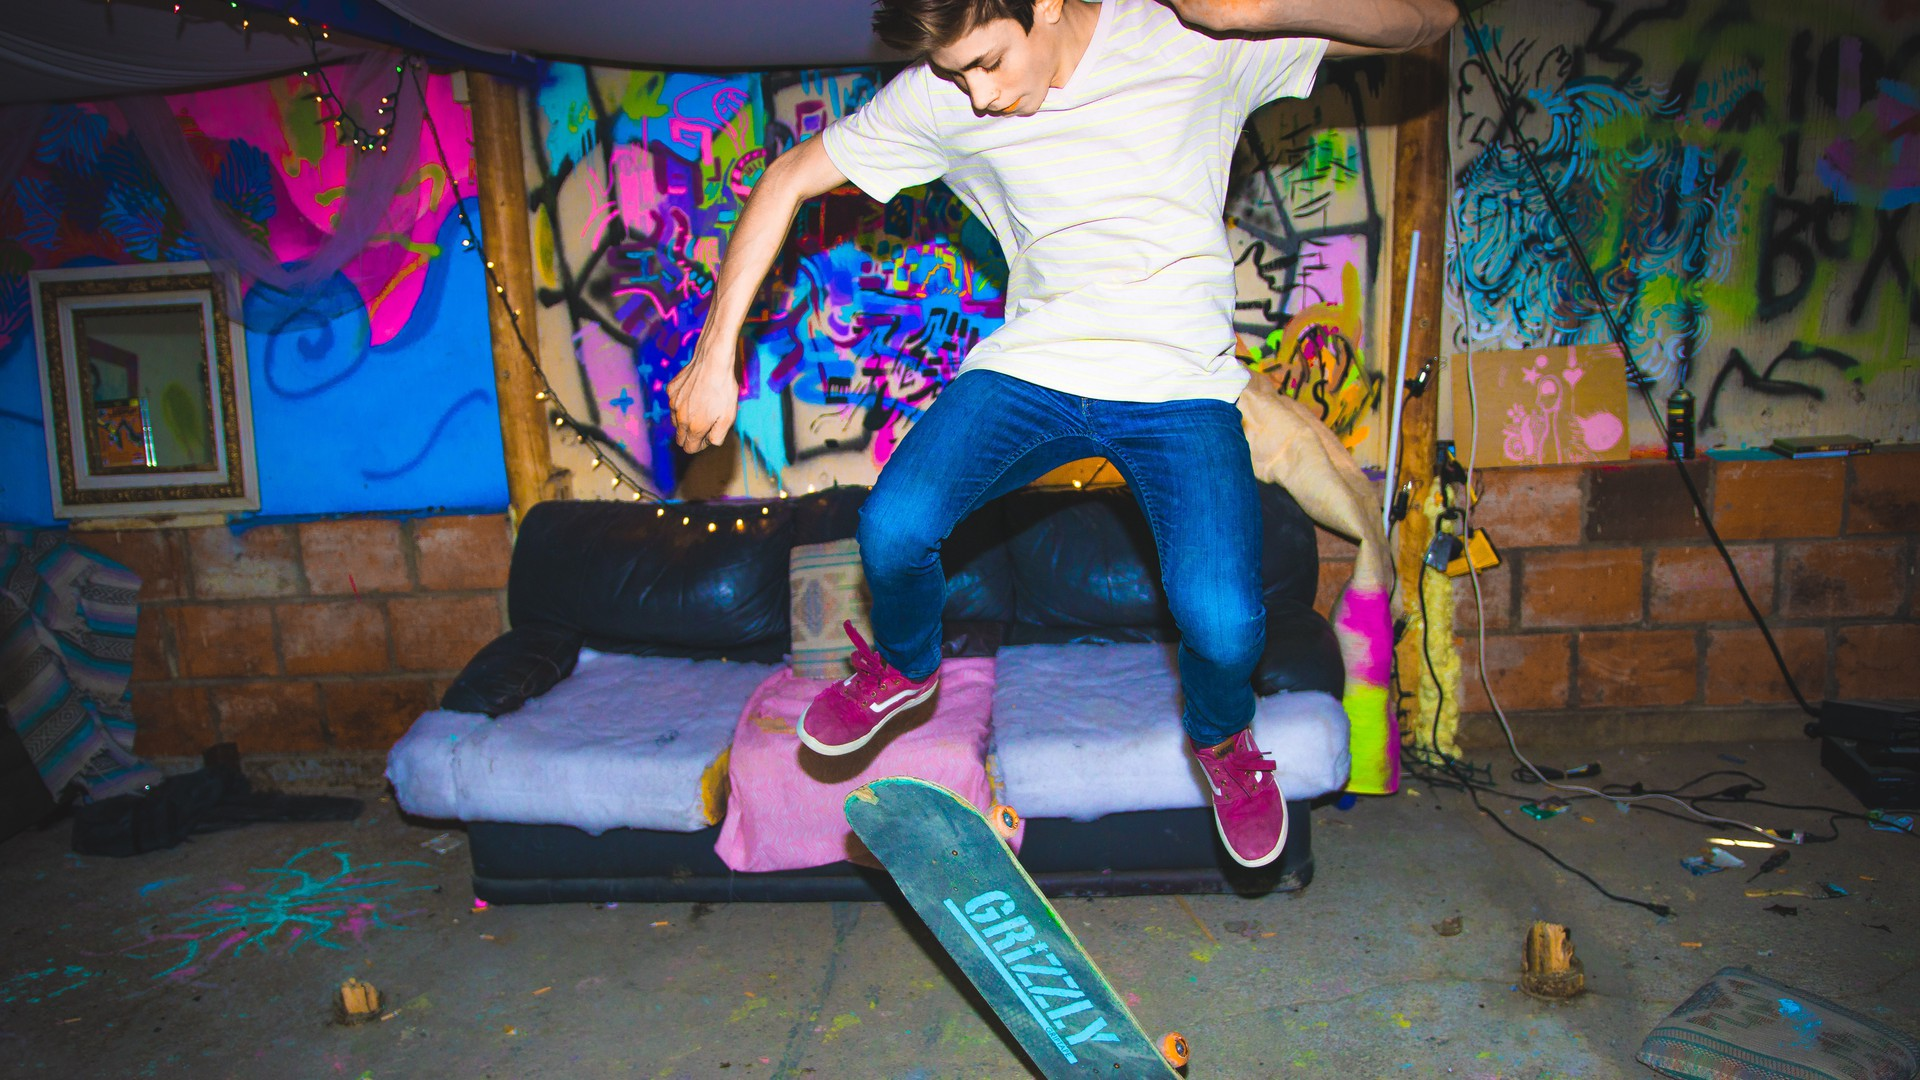 Teenager-in-der-Nacht-am-Skateboard.jpg